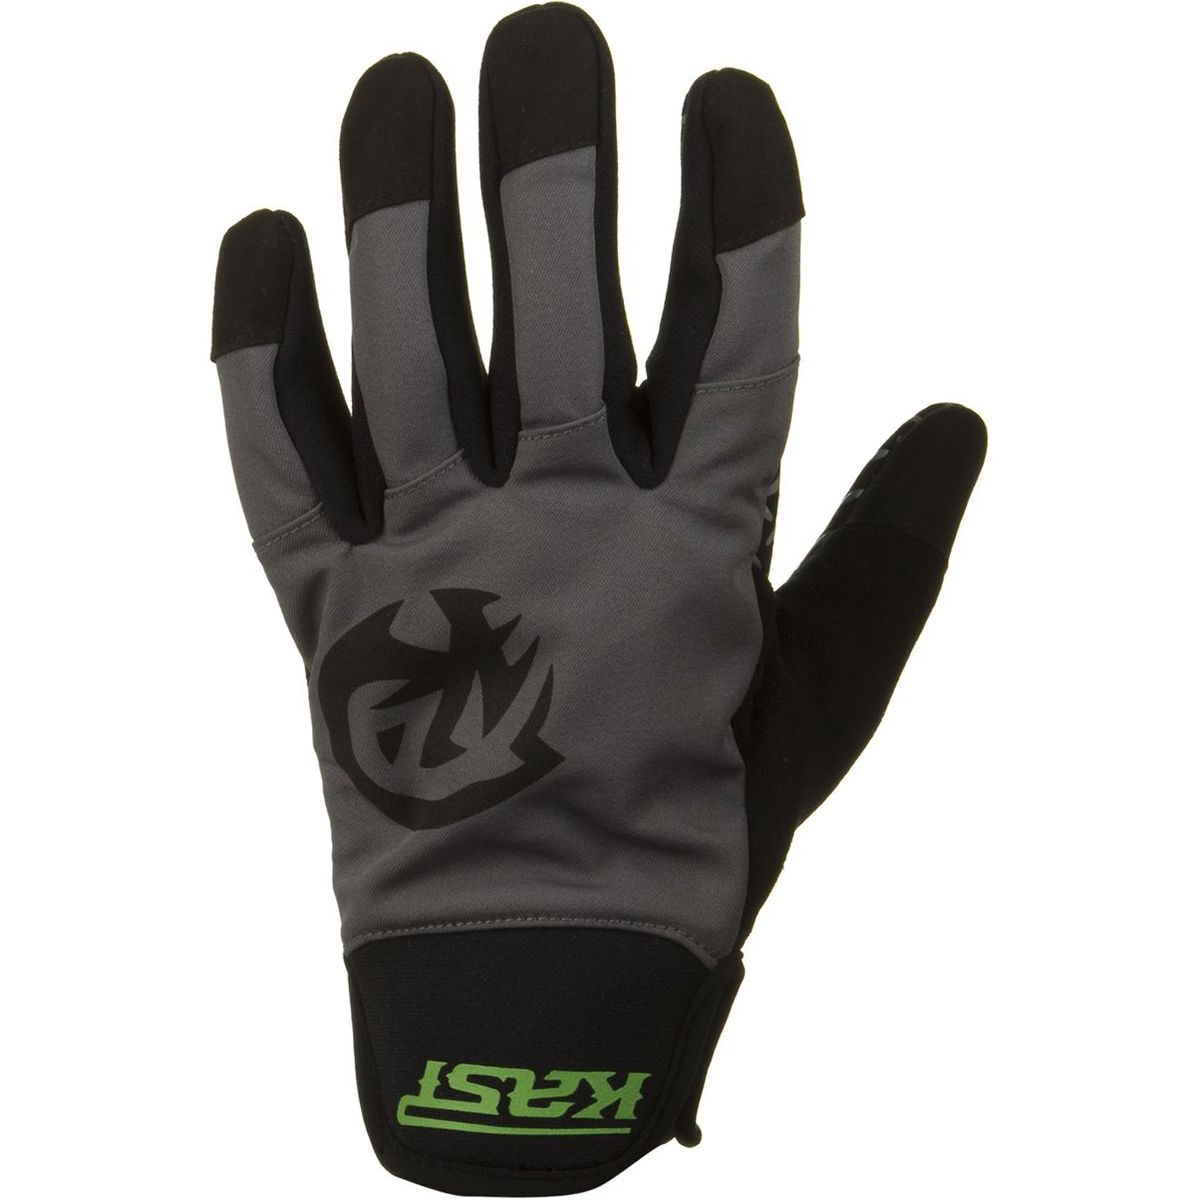 Kast Gear Raptor Glove